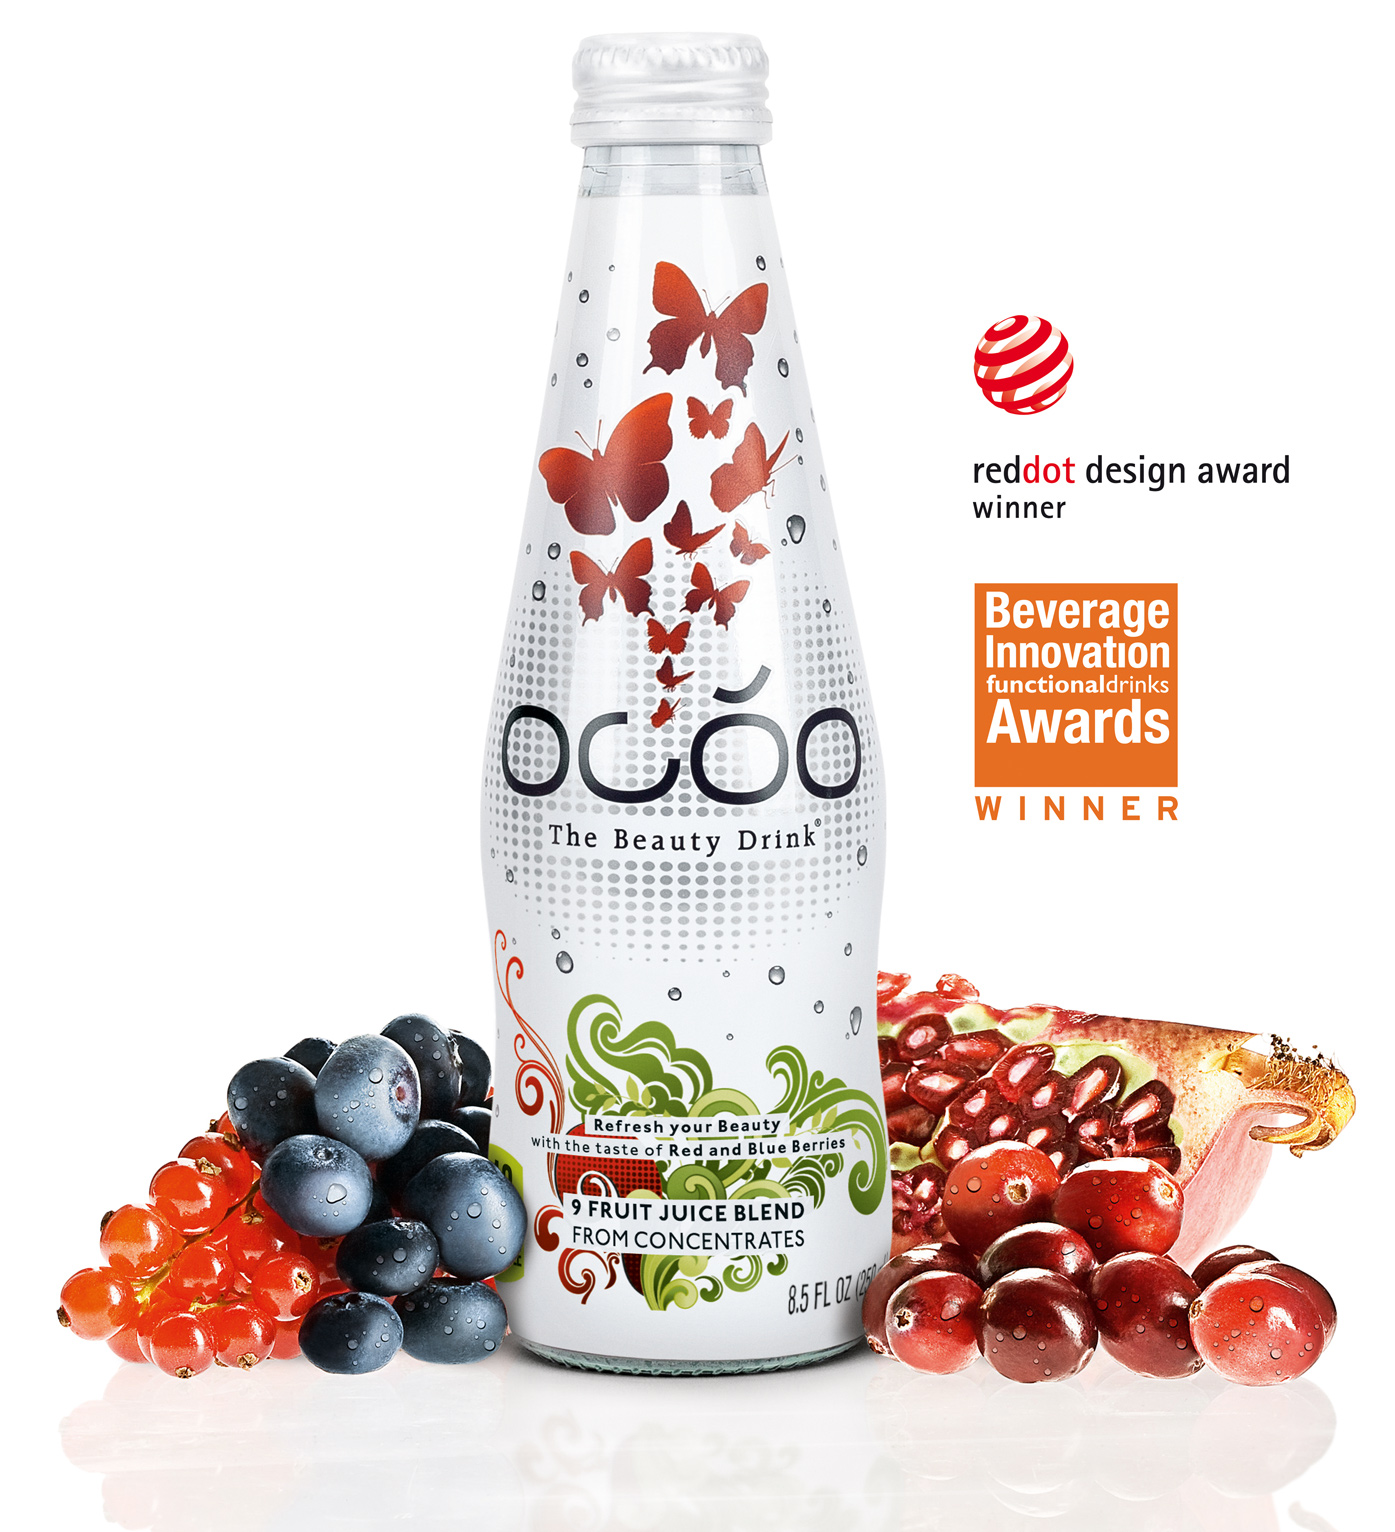 Ocoo - The Beauty Drink - Glasflasche